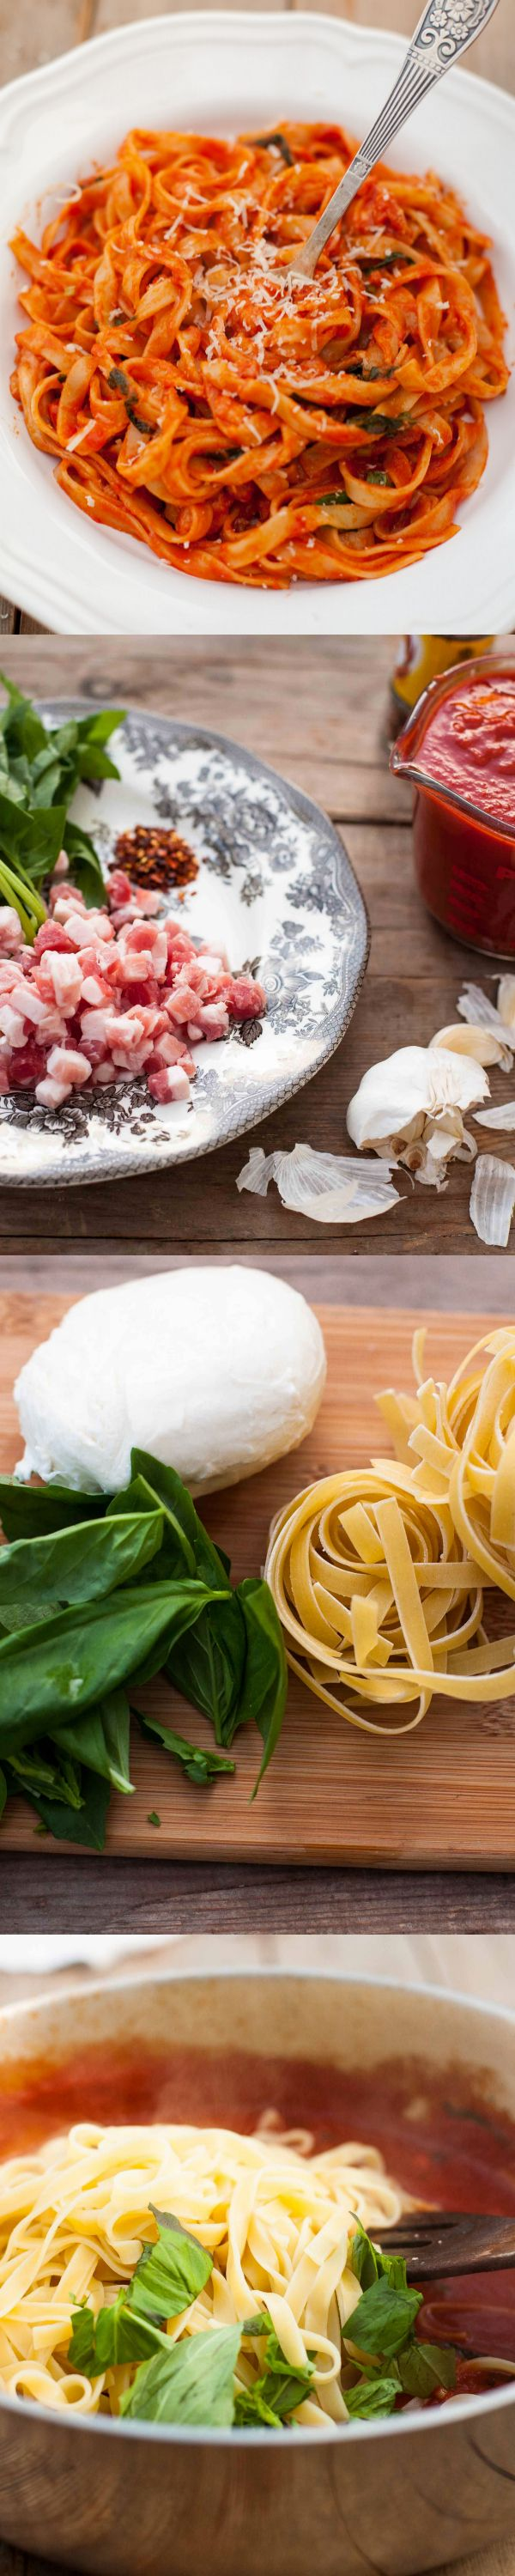 Cheesy Tagliatelle with Pancetta, Basil and Mozzarella, ready in 20 minutes but tastes like it came from the best Italian restaurant. All natural ingredients.